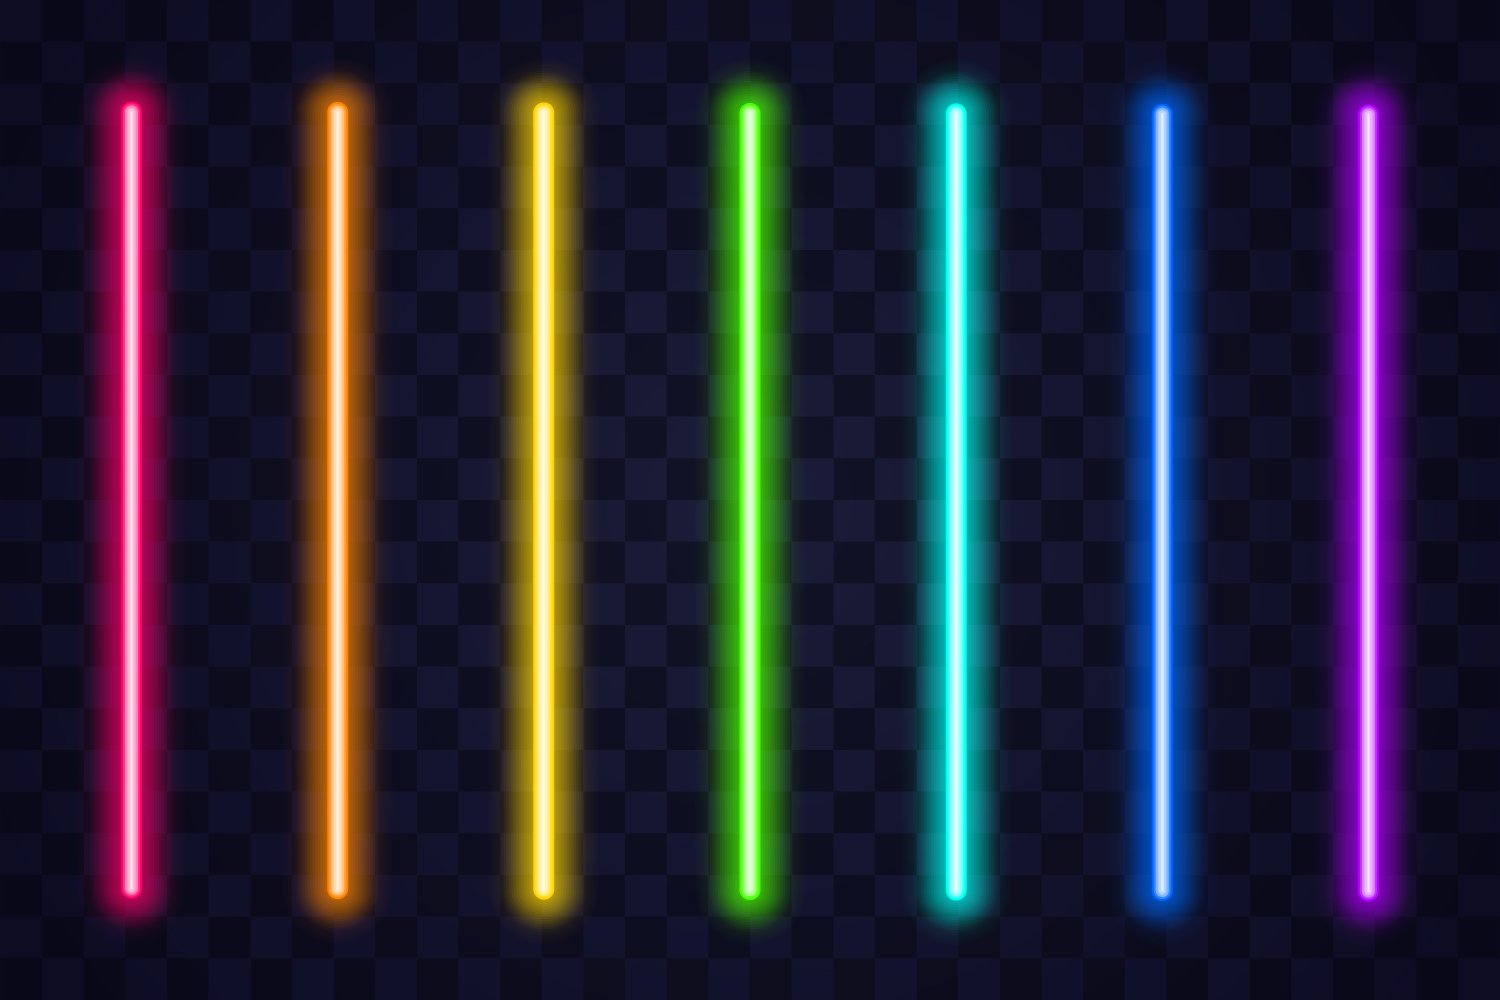 Smooth neon lines in different colors.